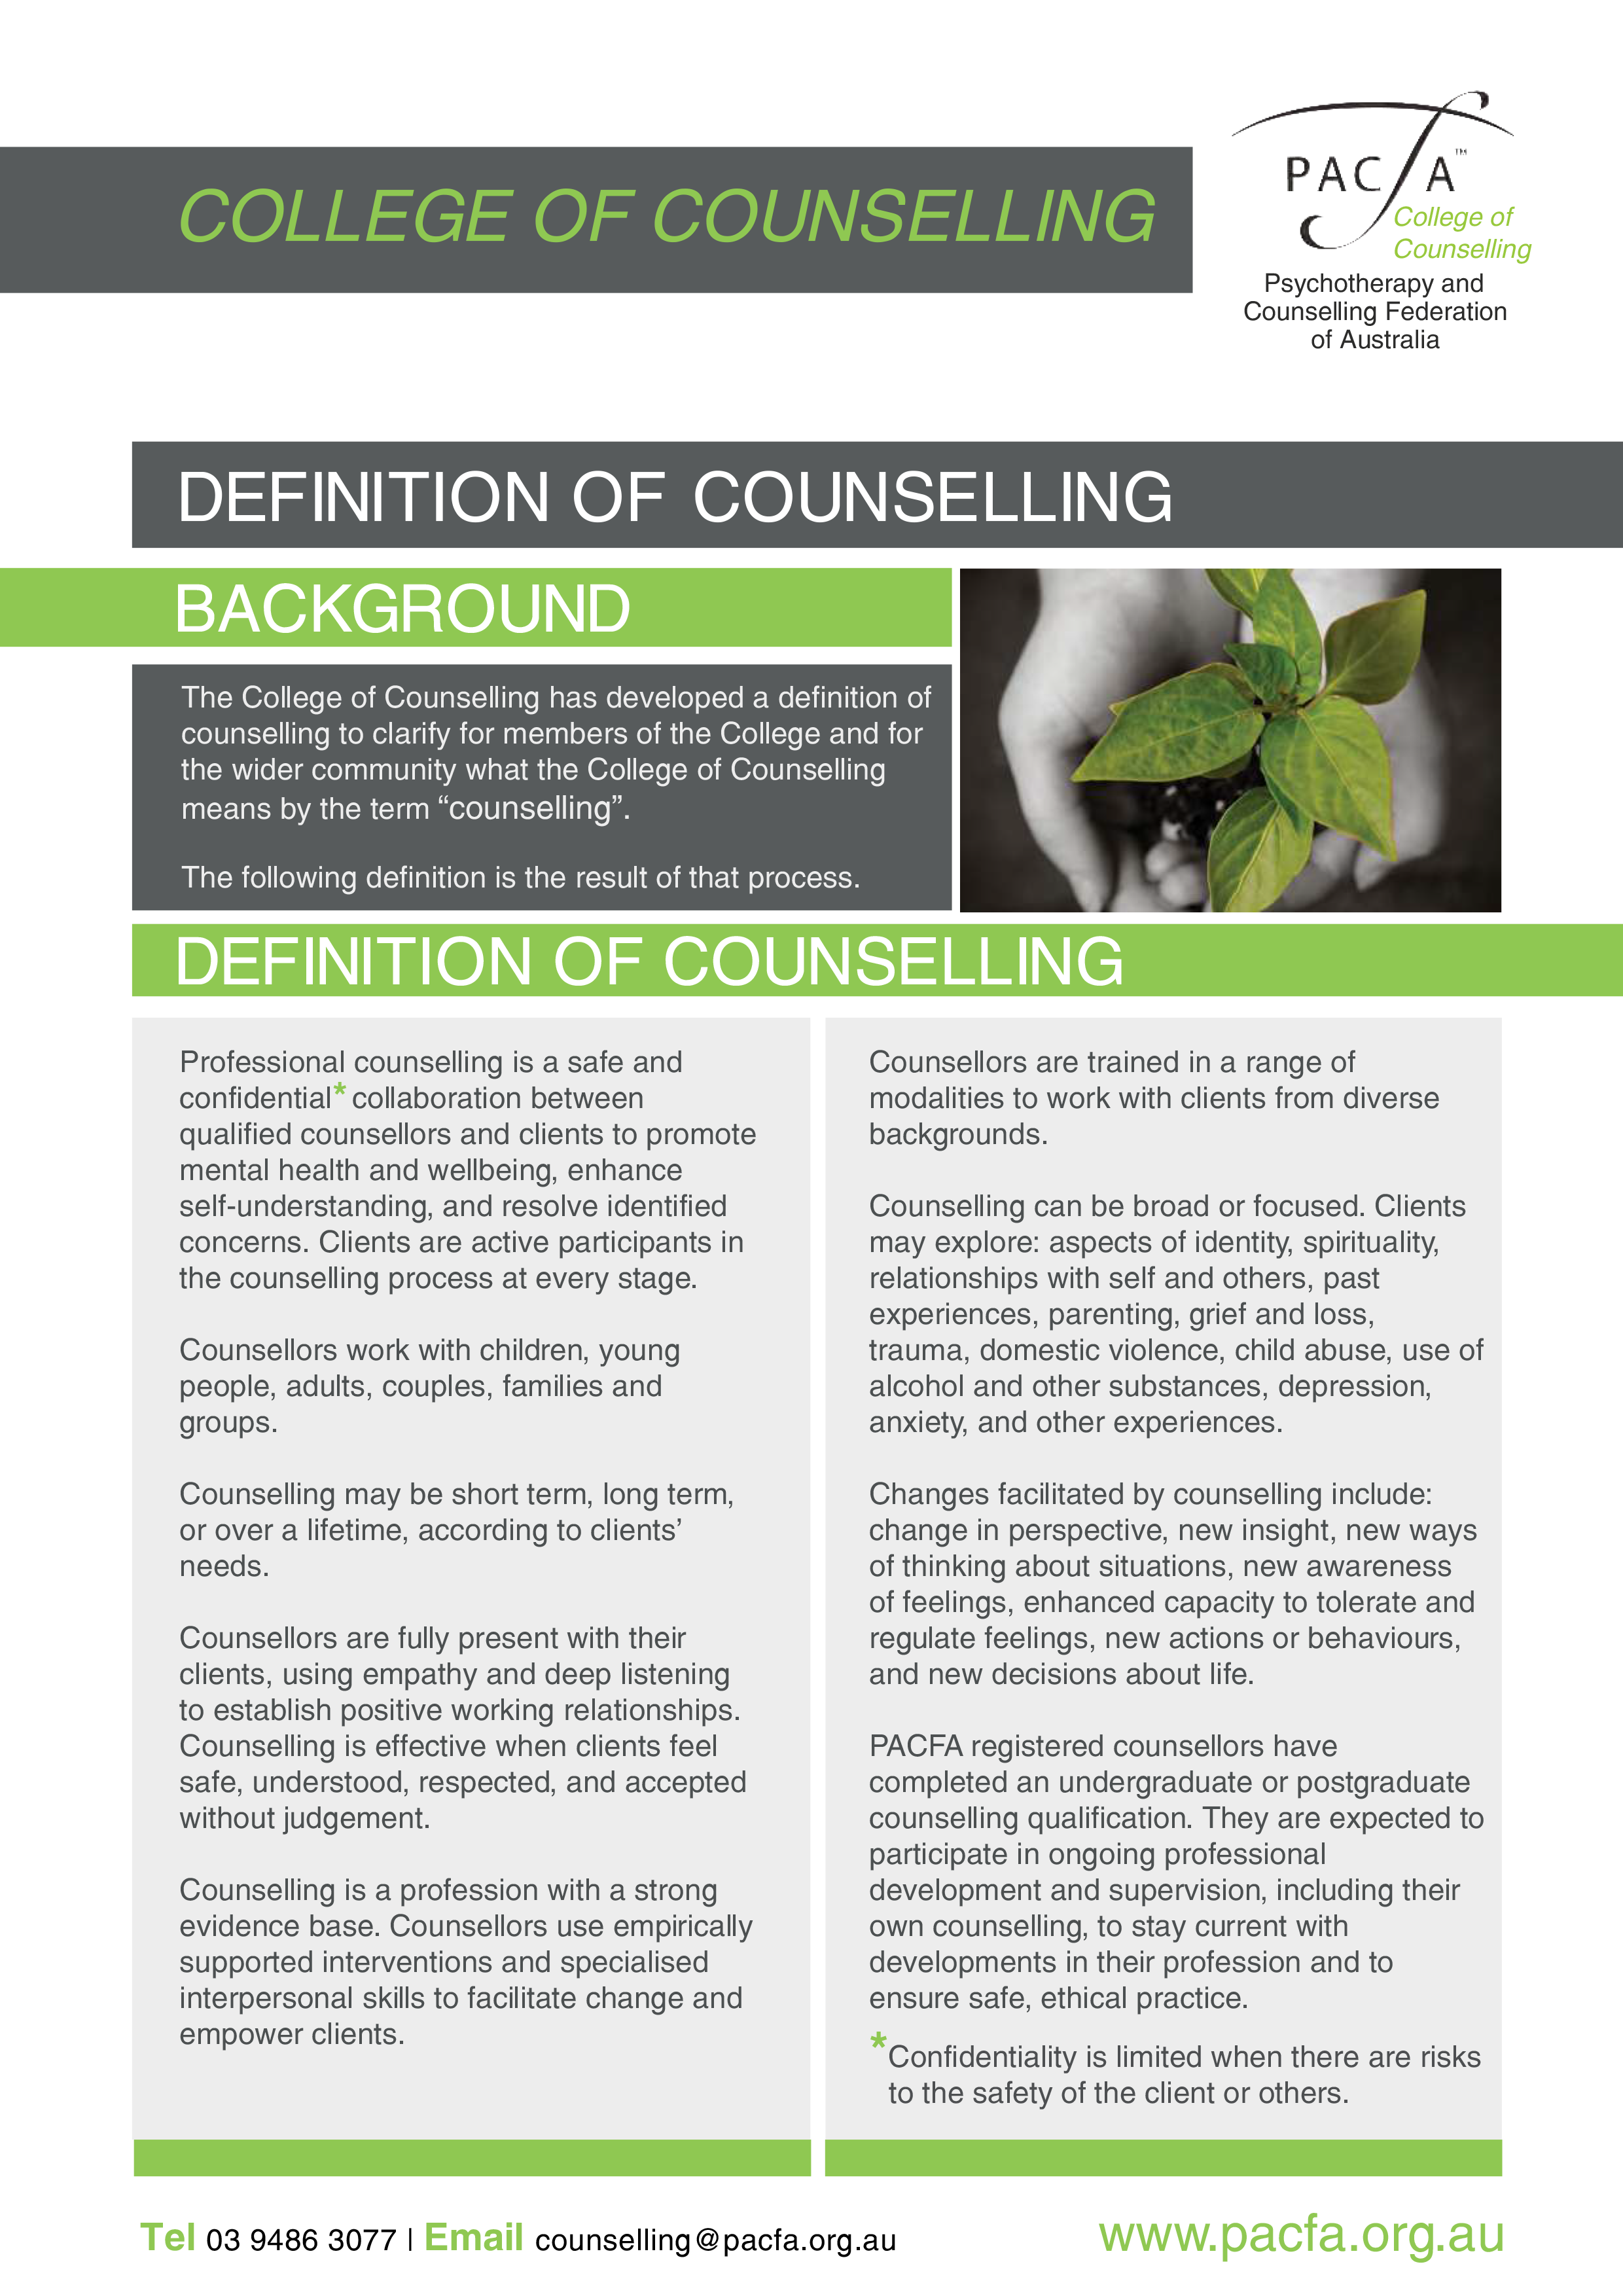 College-of-Counselling-Definition_of_Counselling.png